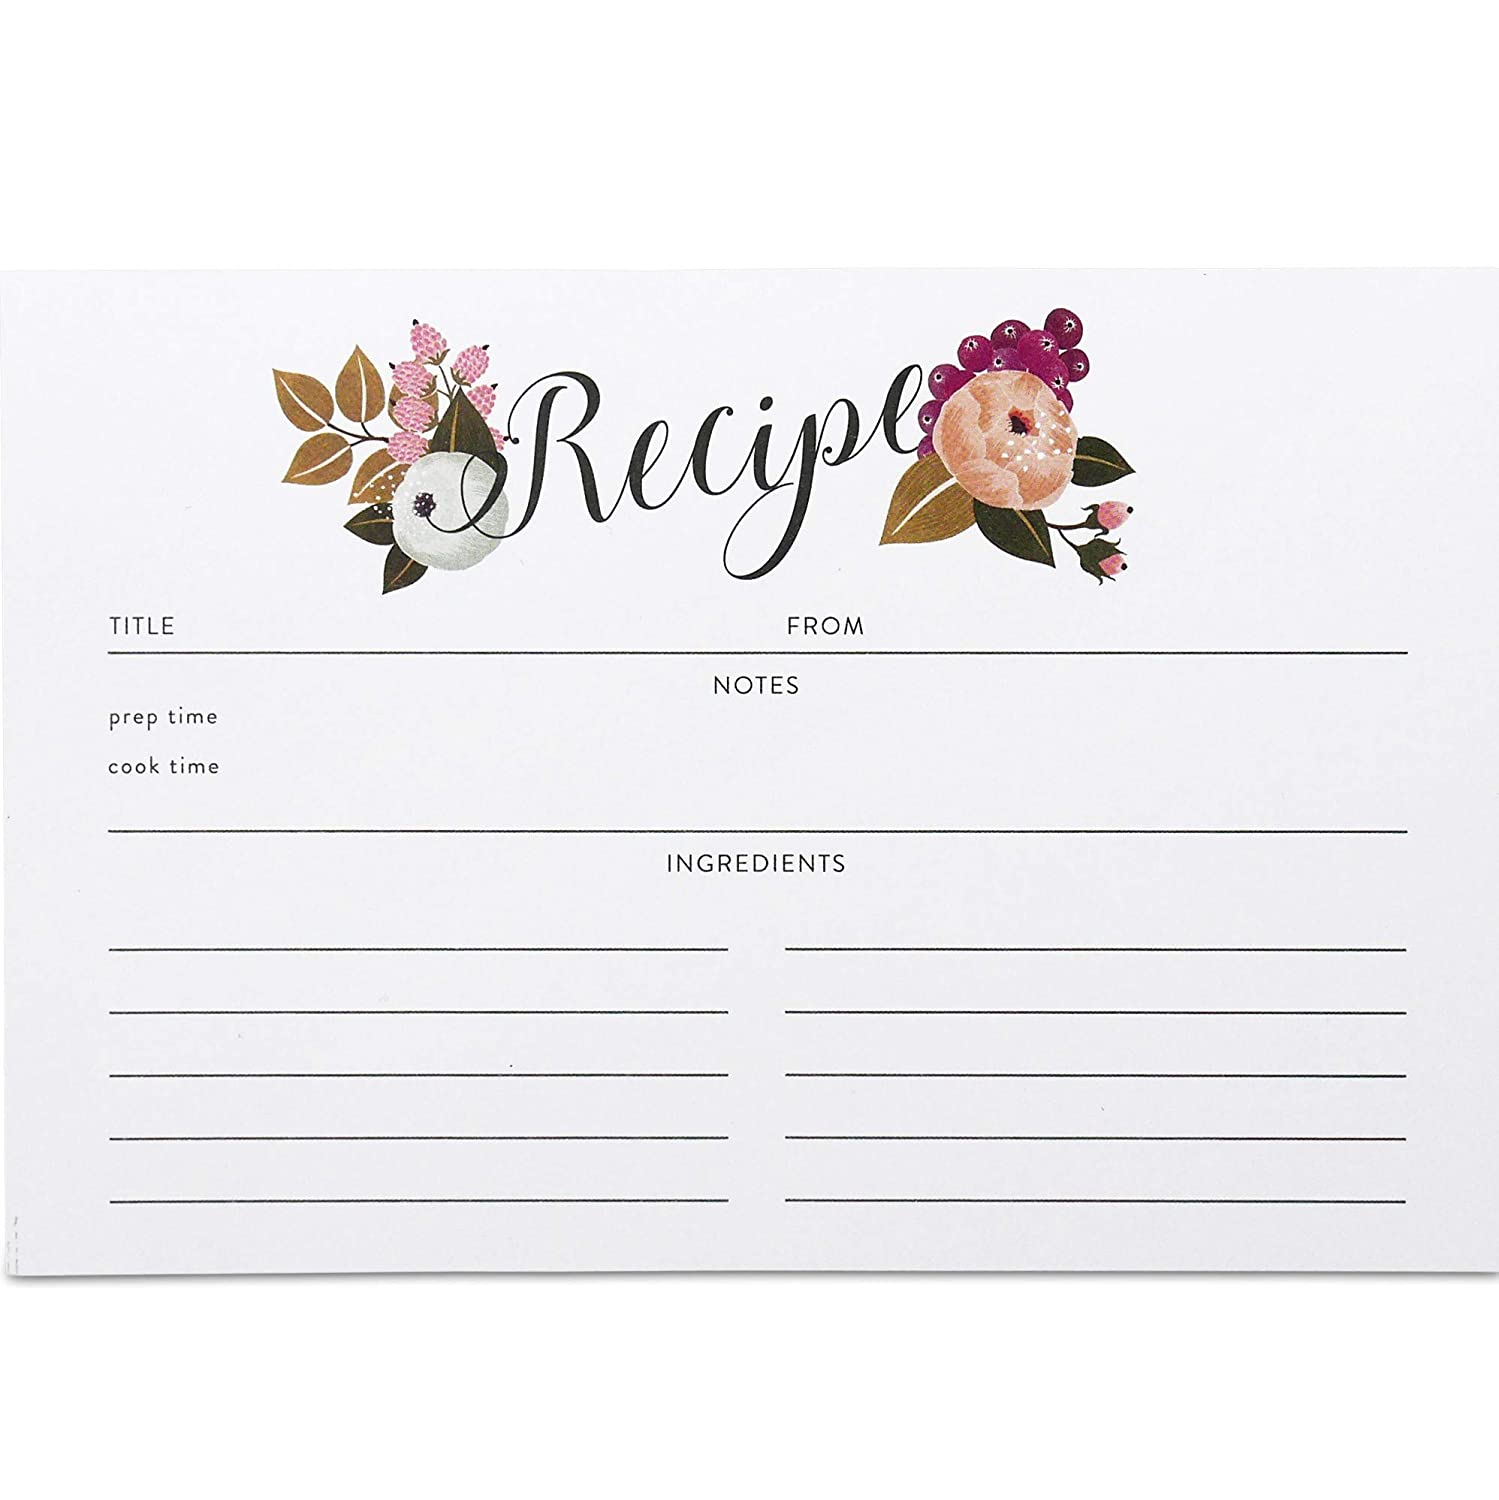 Polite Society Recipe Cards Refill Set 55 Double Sided Recipe Cards, 4x6 inches. Thick Card Stock by Polite Society Floral Recipe Card Set Blank